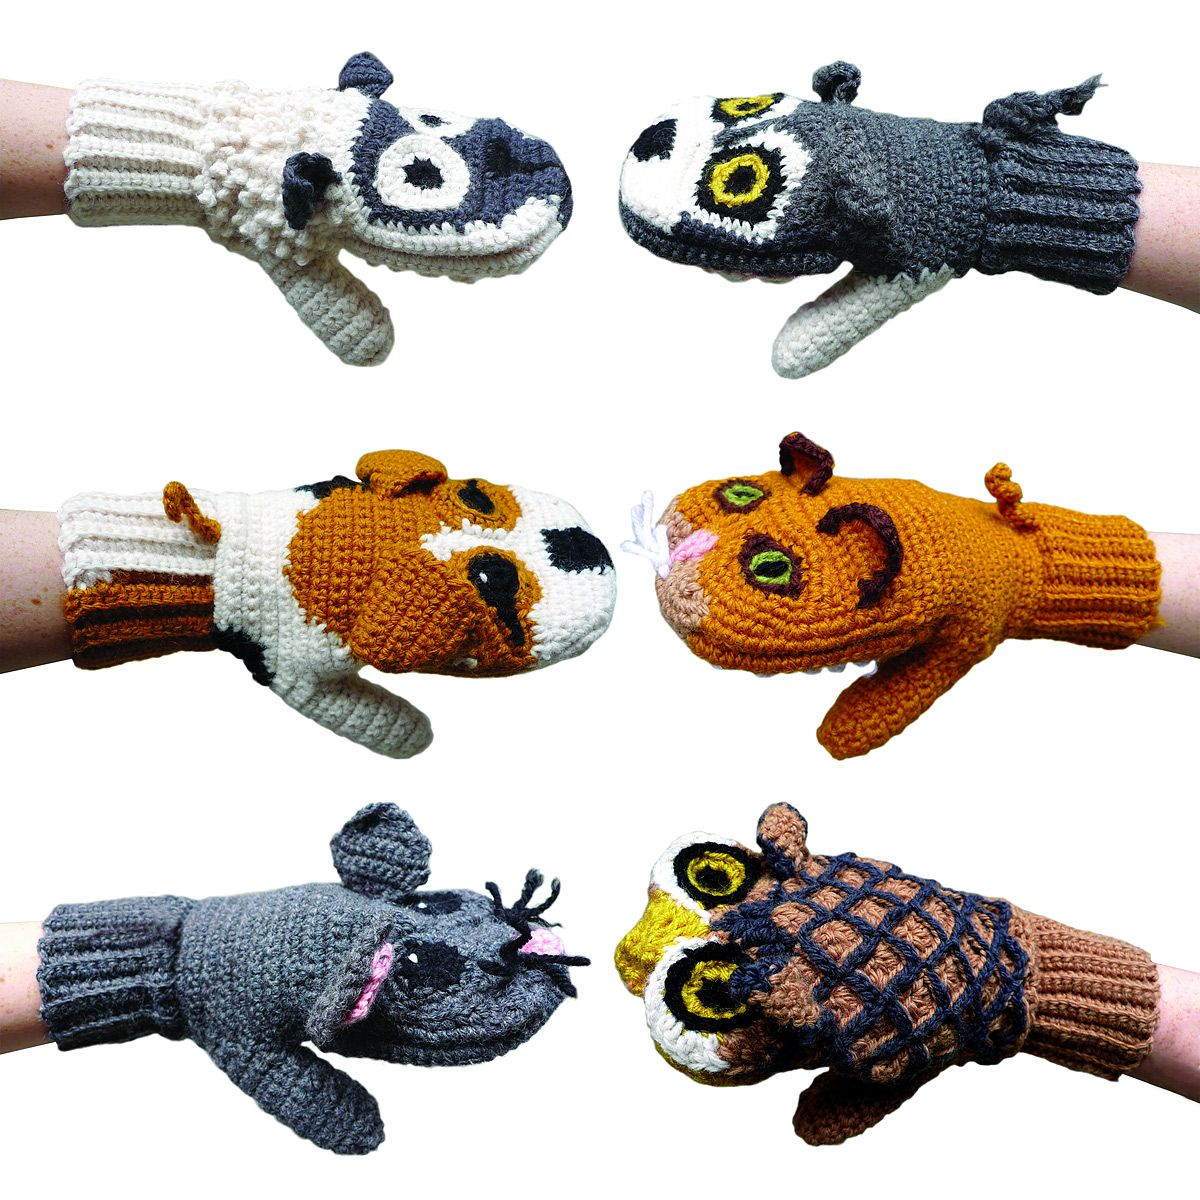 FABULOUSLY clever and super cute idea: Predator Vs Prey mittens (Sheep & Wolf/ Dog & Cat/ Mouse & Owl)